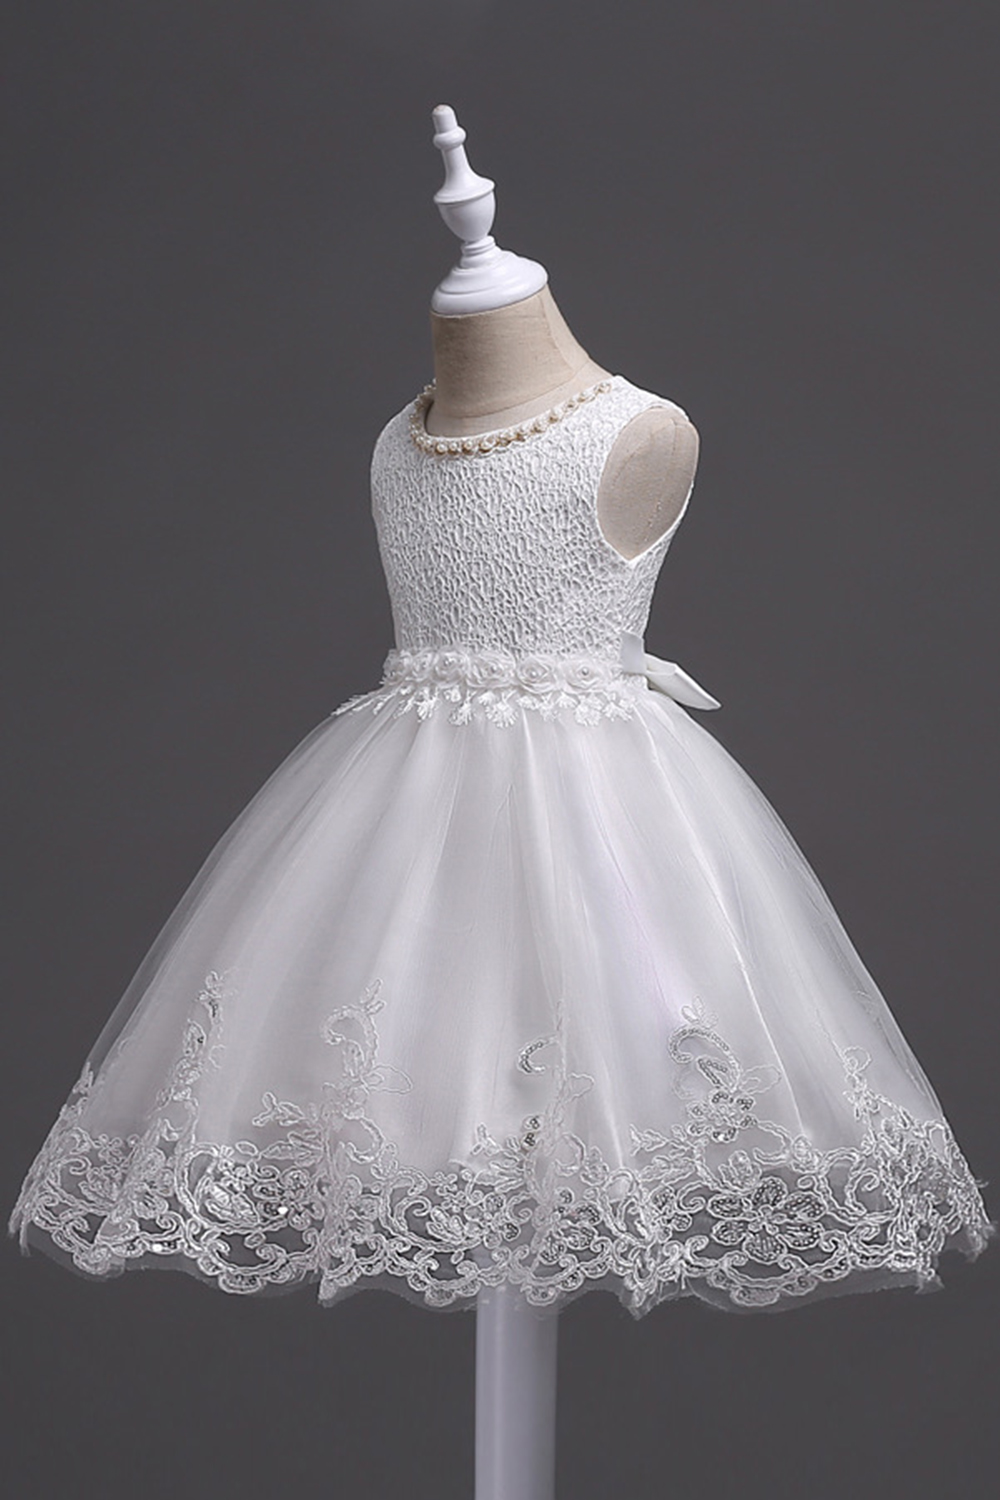 Lovely Lace Short Prom Dresses Little Girl Ball Gowns Dress Party Flower Girl Dresses For Wedding First Communion Birthday Dress